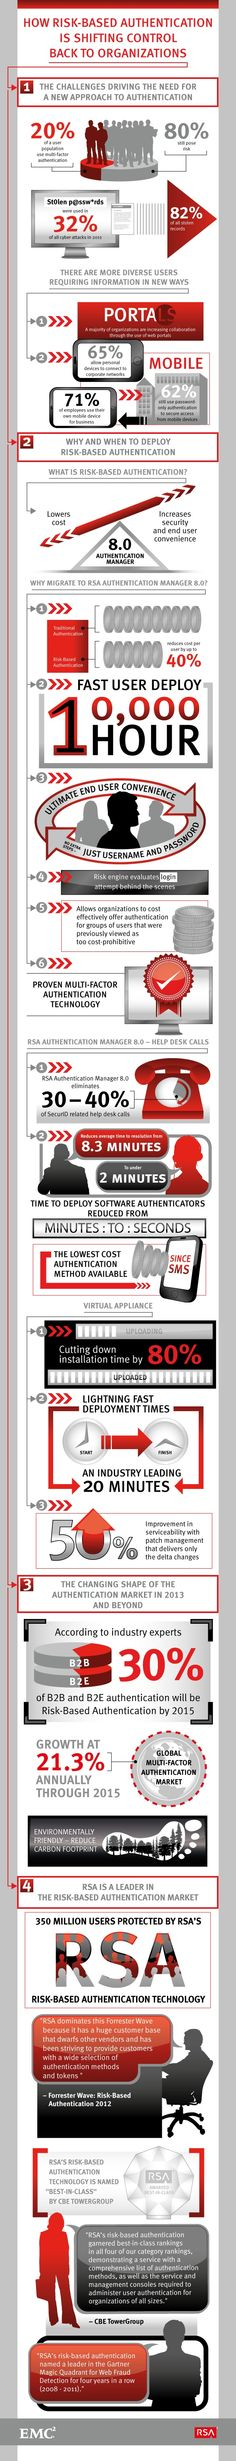 51 Best RSA Security images in 2015 | Infographic, Cyber